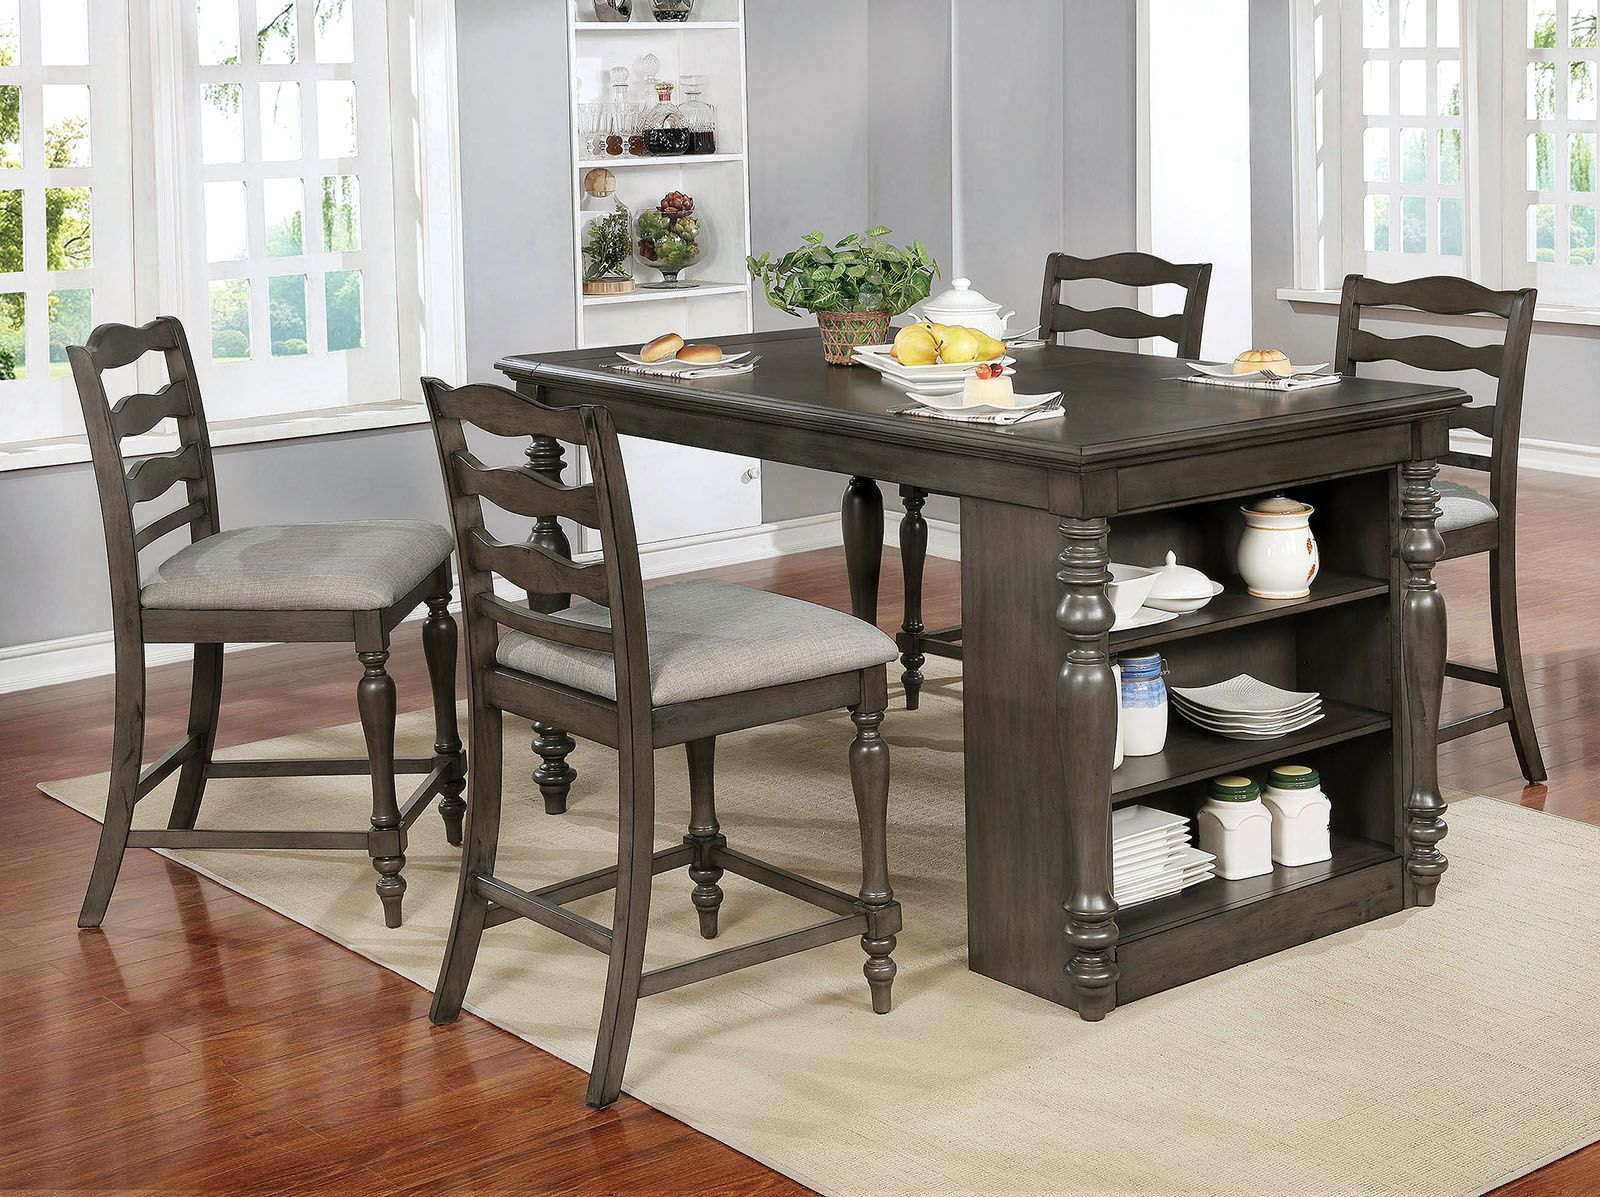 34+ Signature design by ashley caitbrook counter height dining storage table Trend